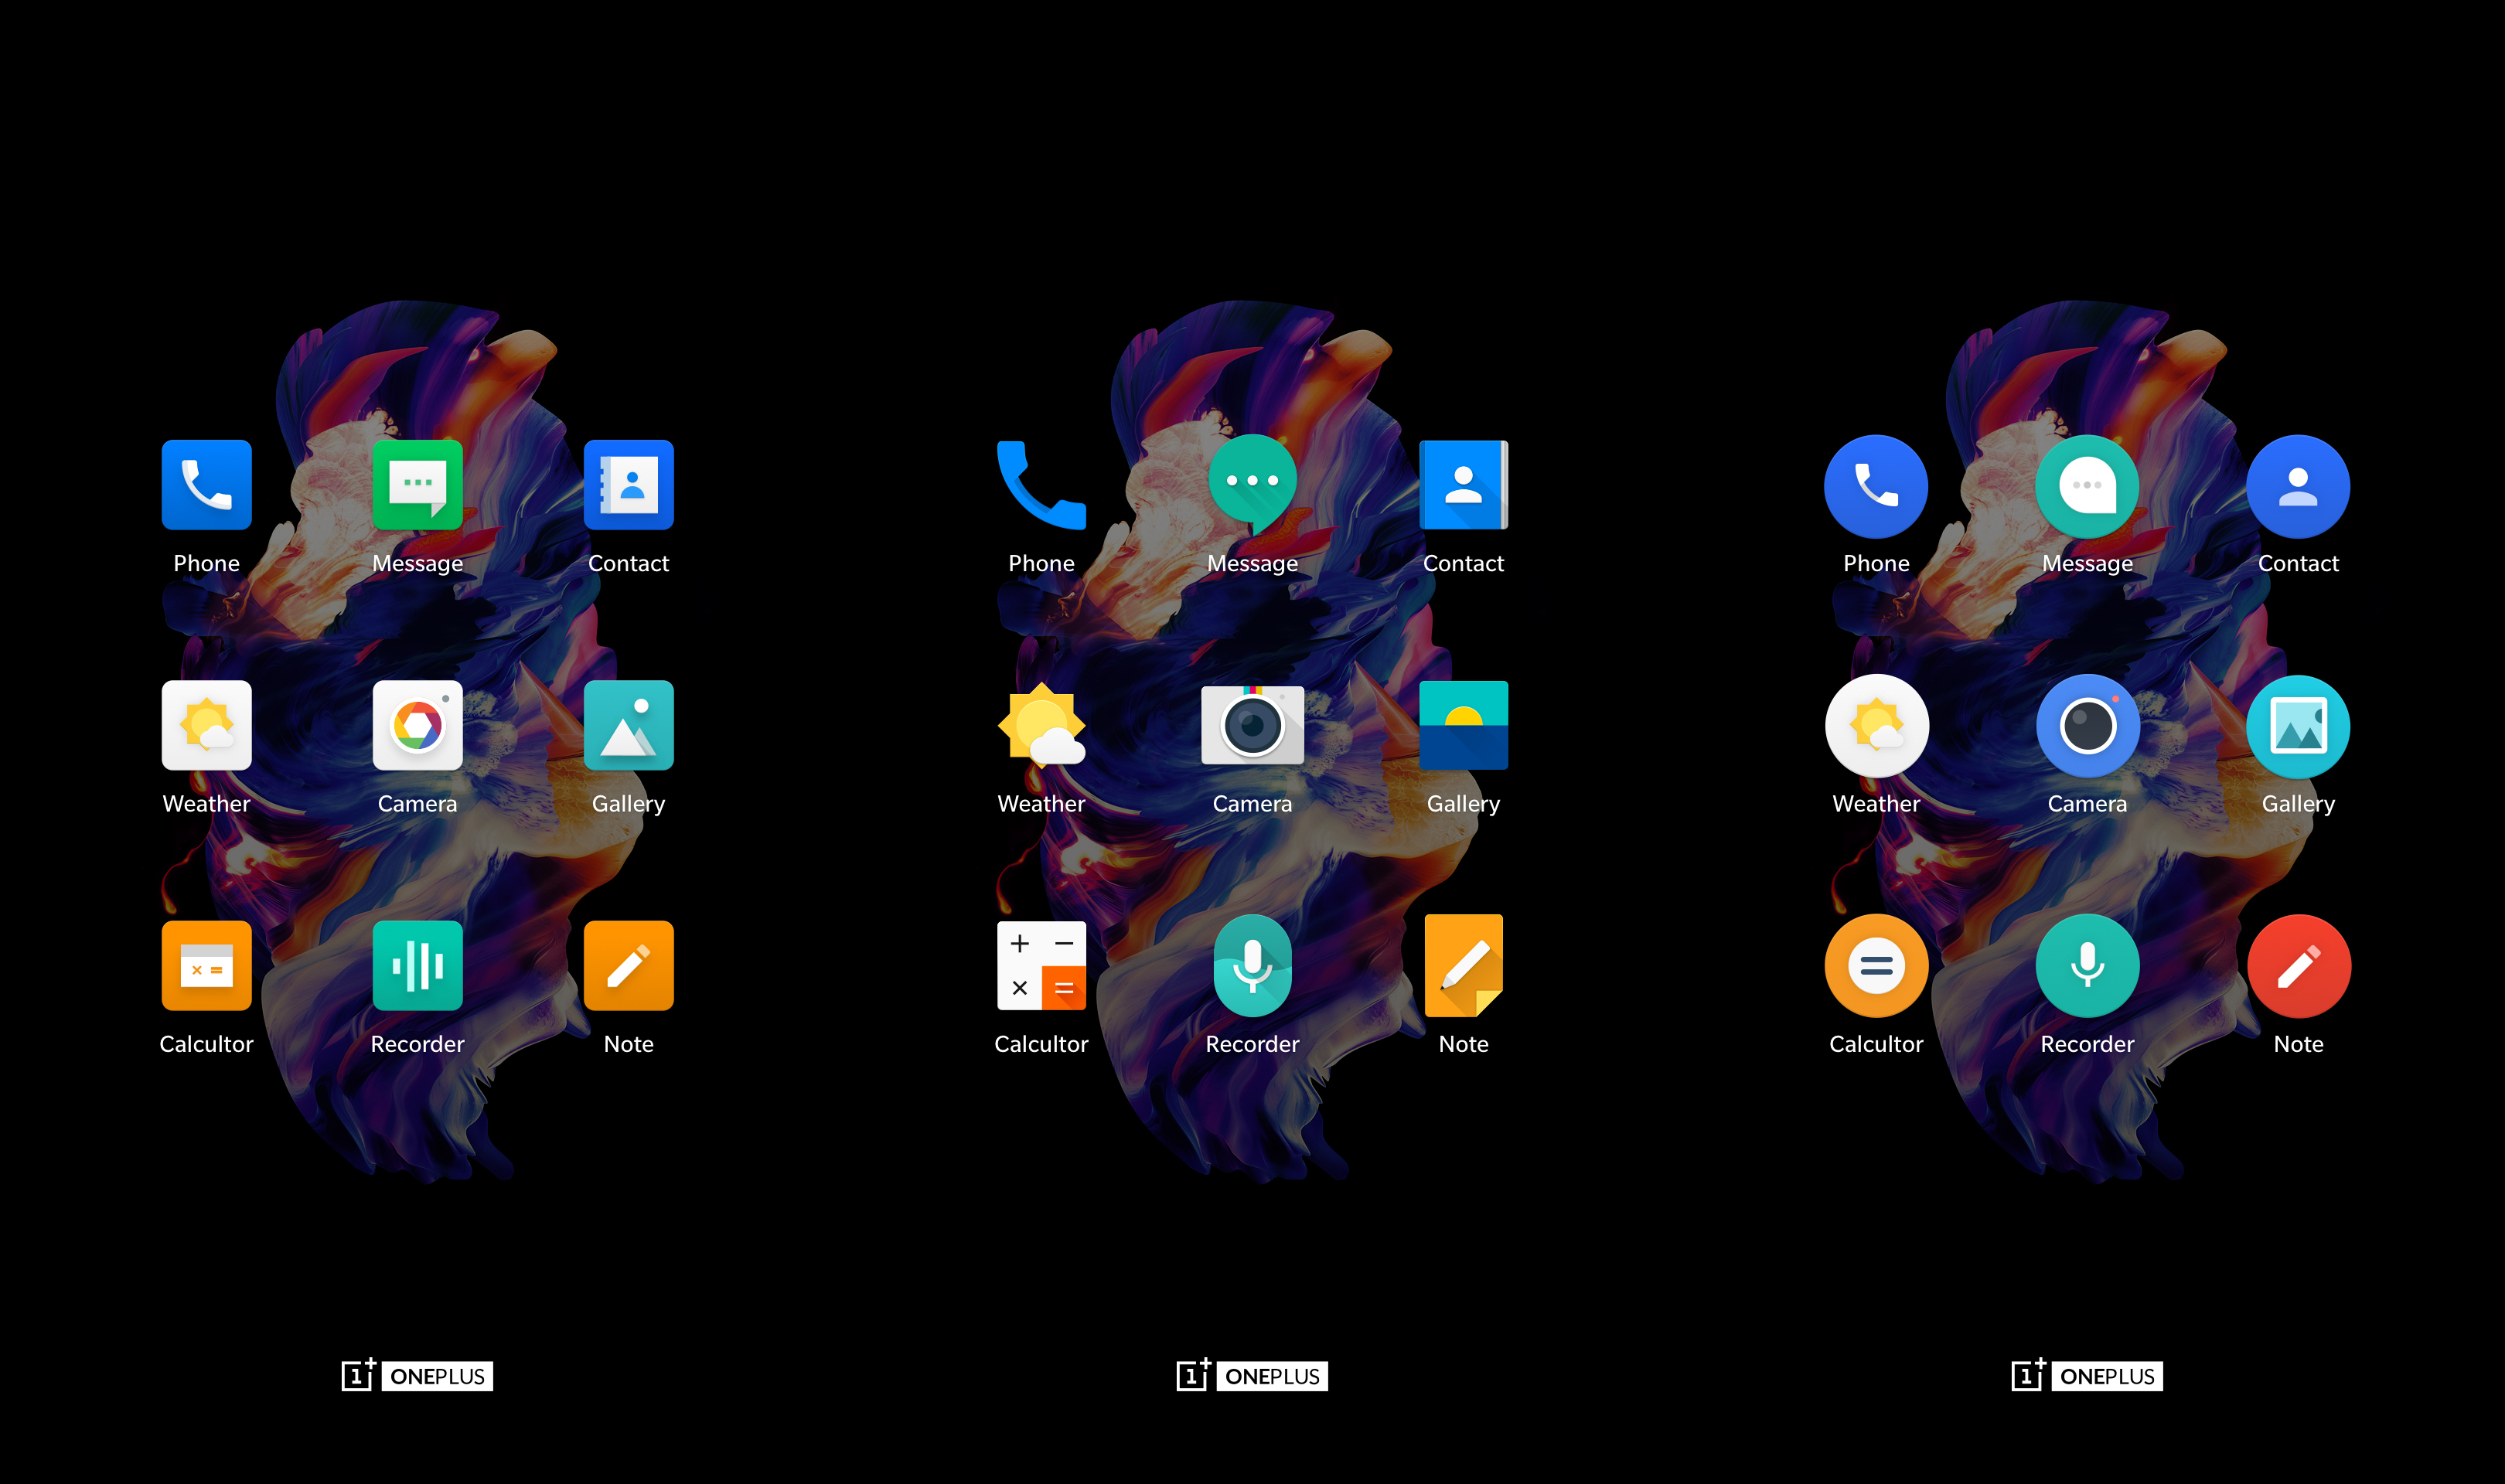 OnePlus drops 3 icon packs into the Play Store, but only for